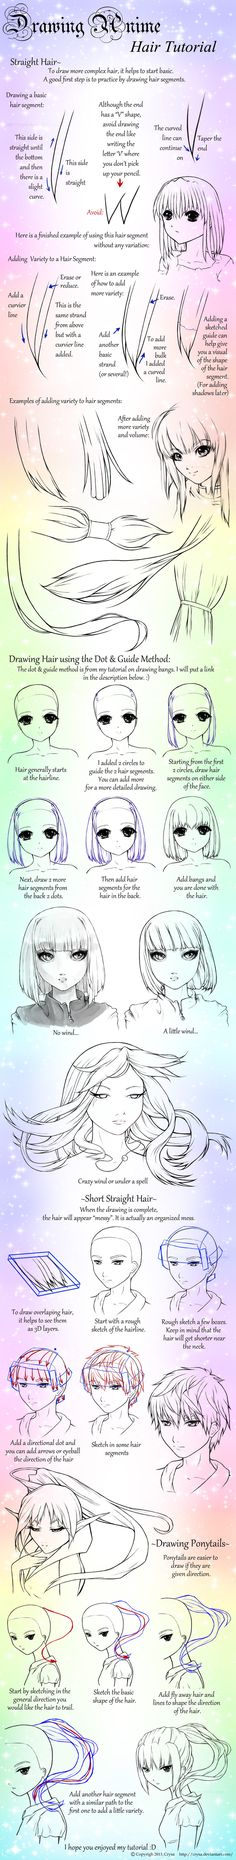 Drawing Anime: Straight Hair and Ponytails by ~Crysa on deviantART